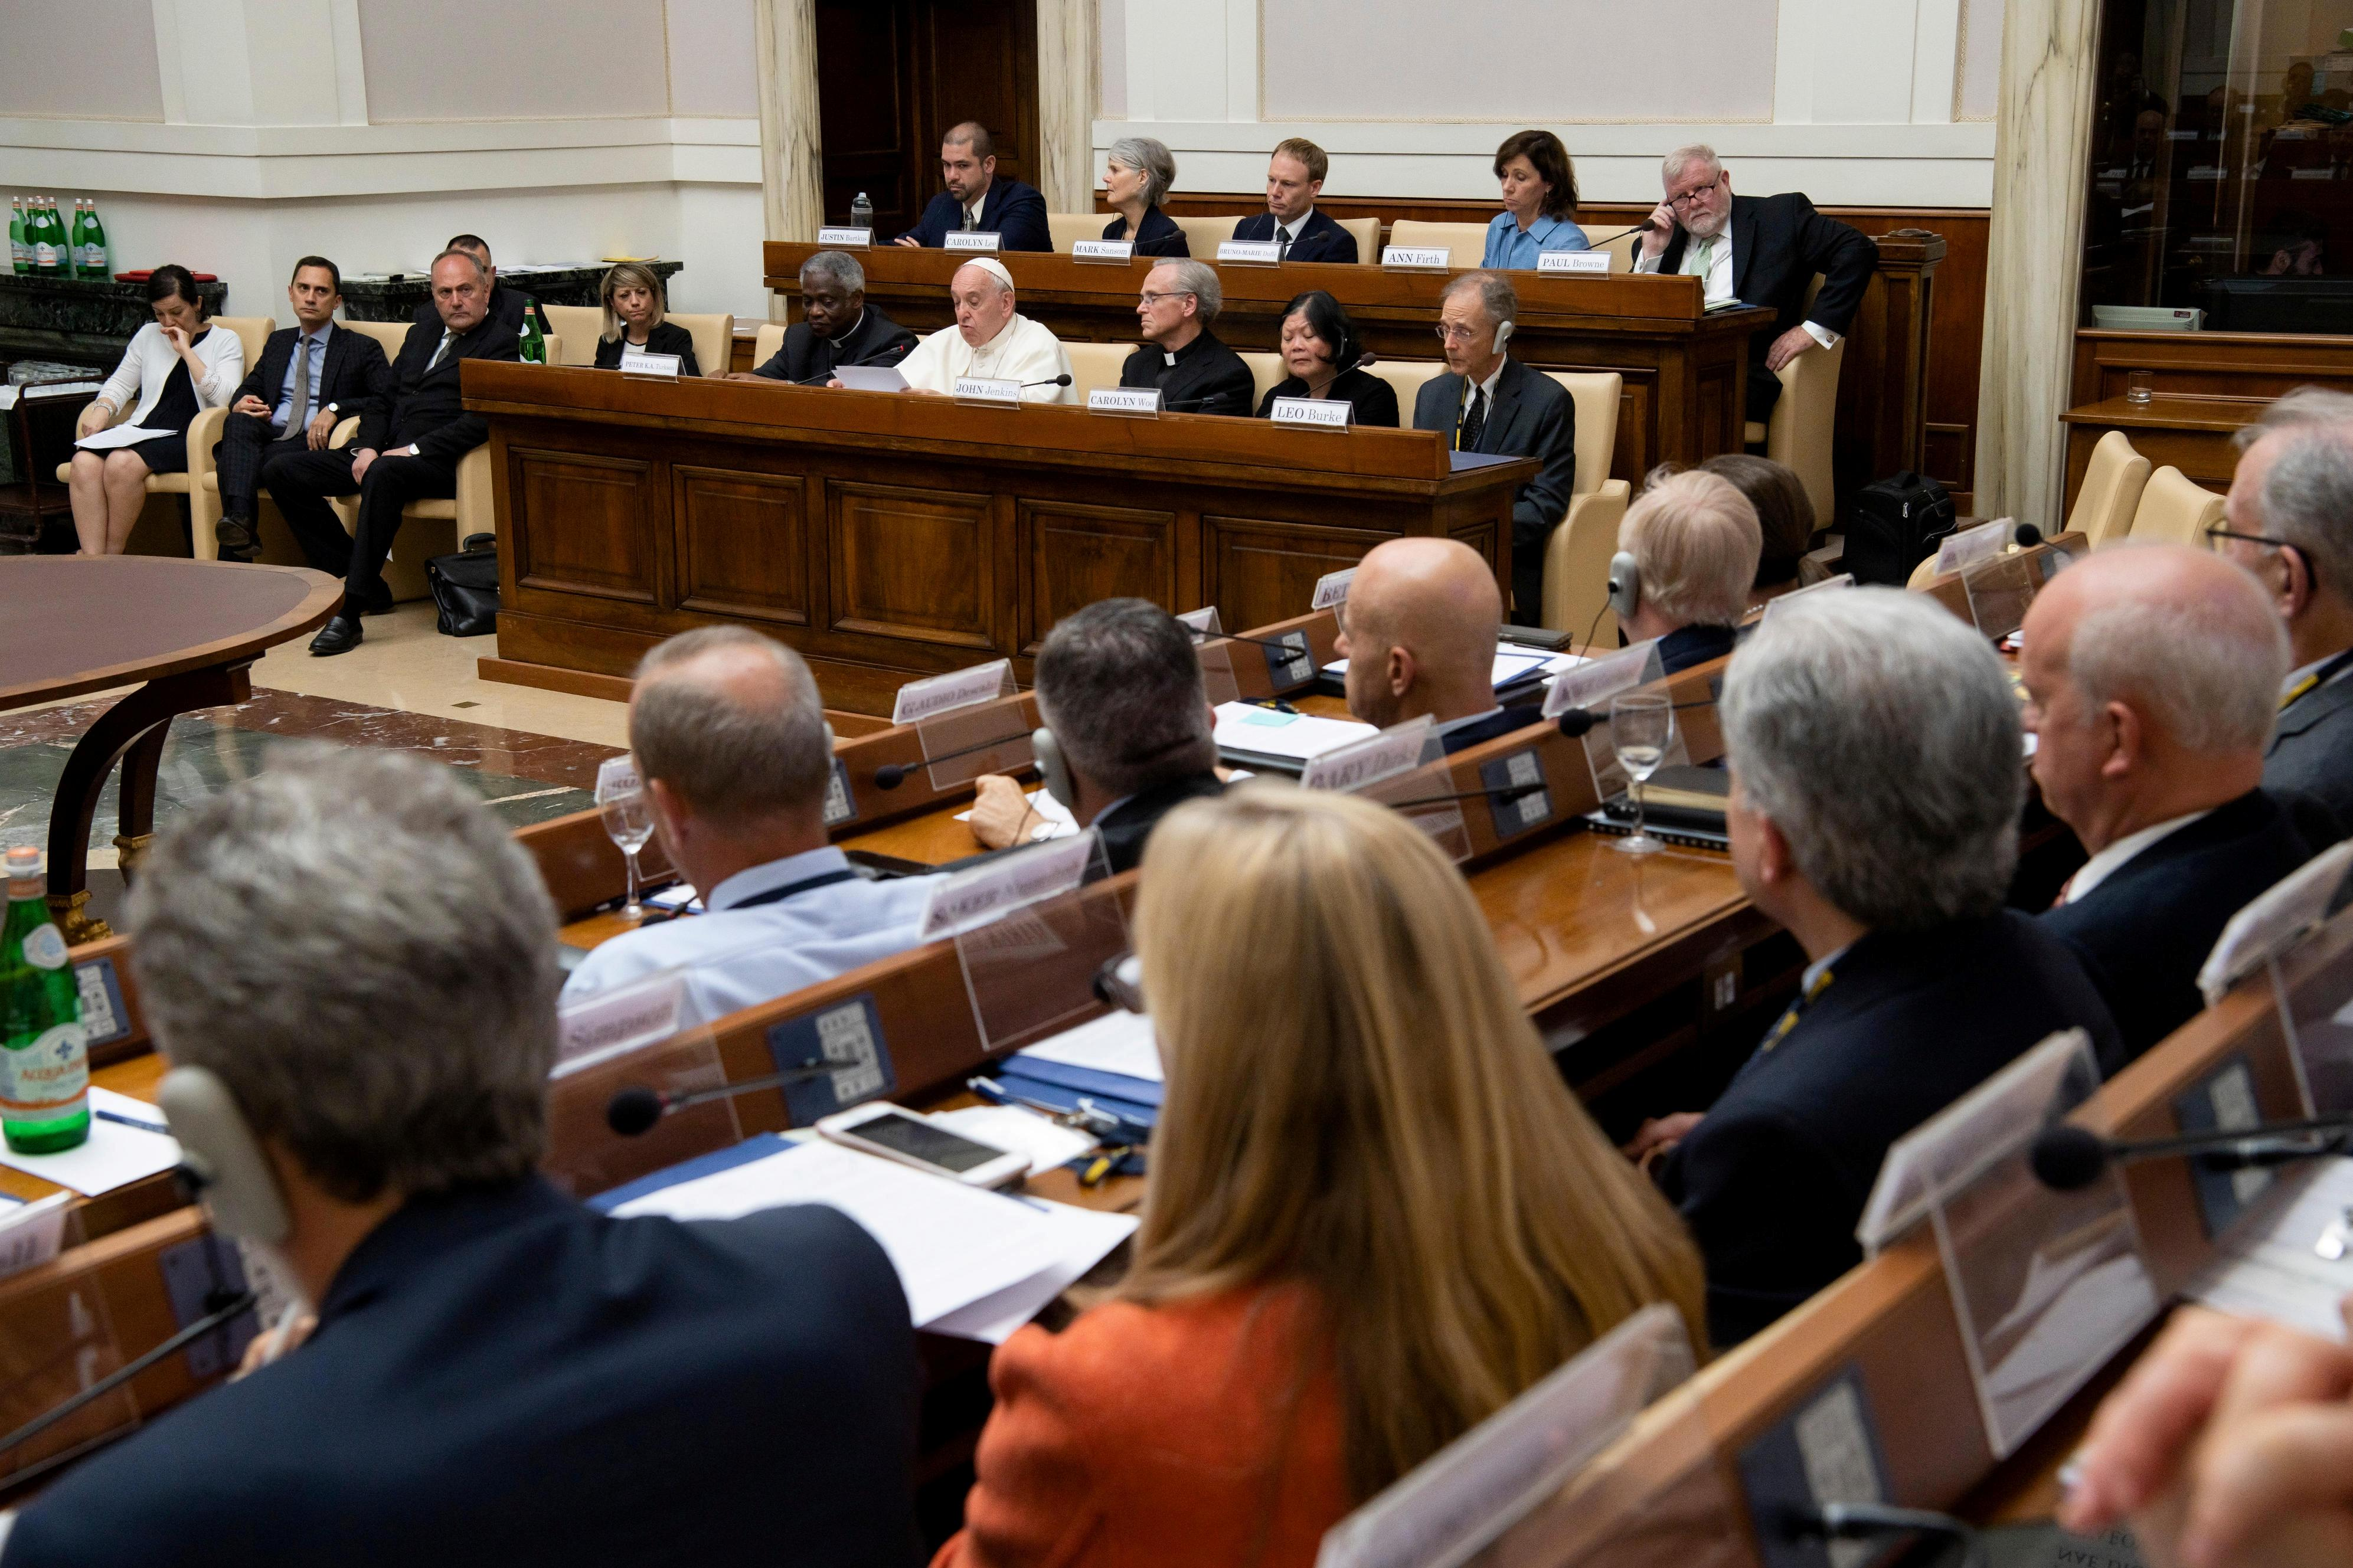 Pope backs carbon pricing to stem global warming and appeals to deniers